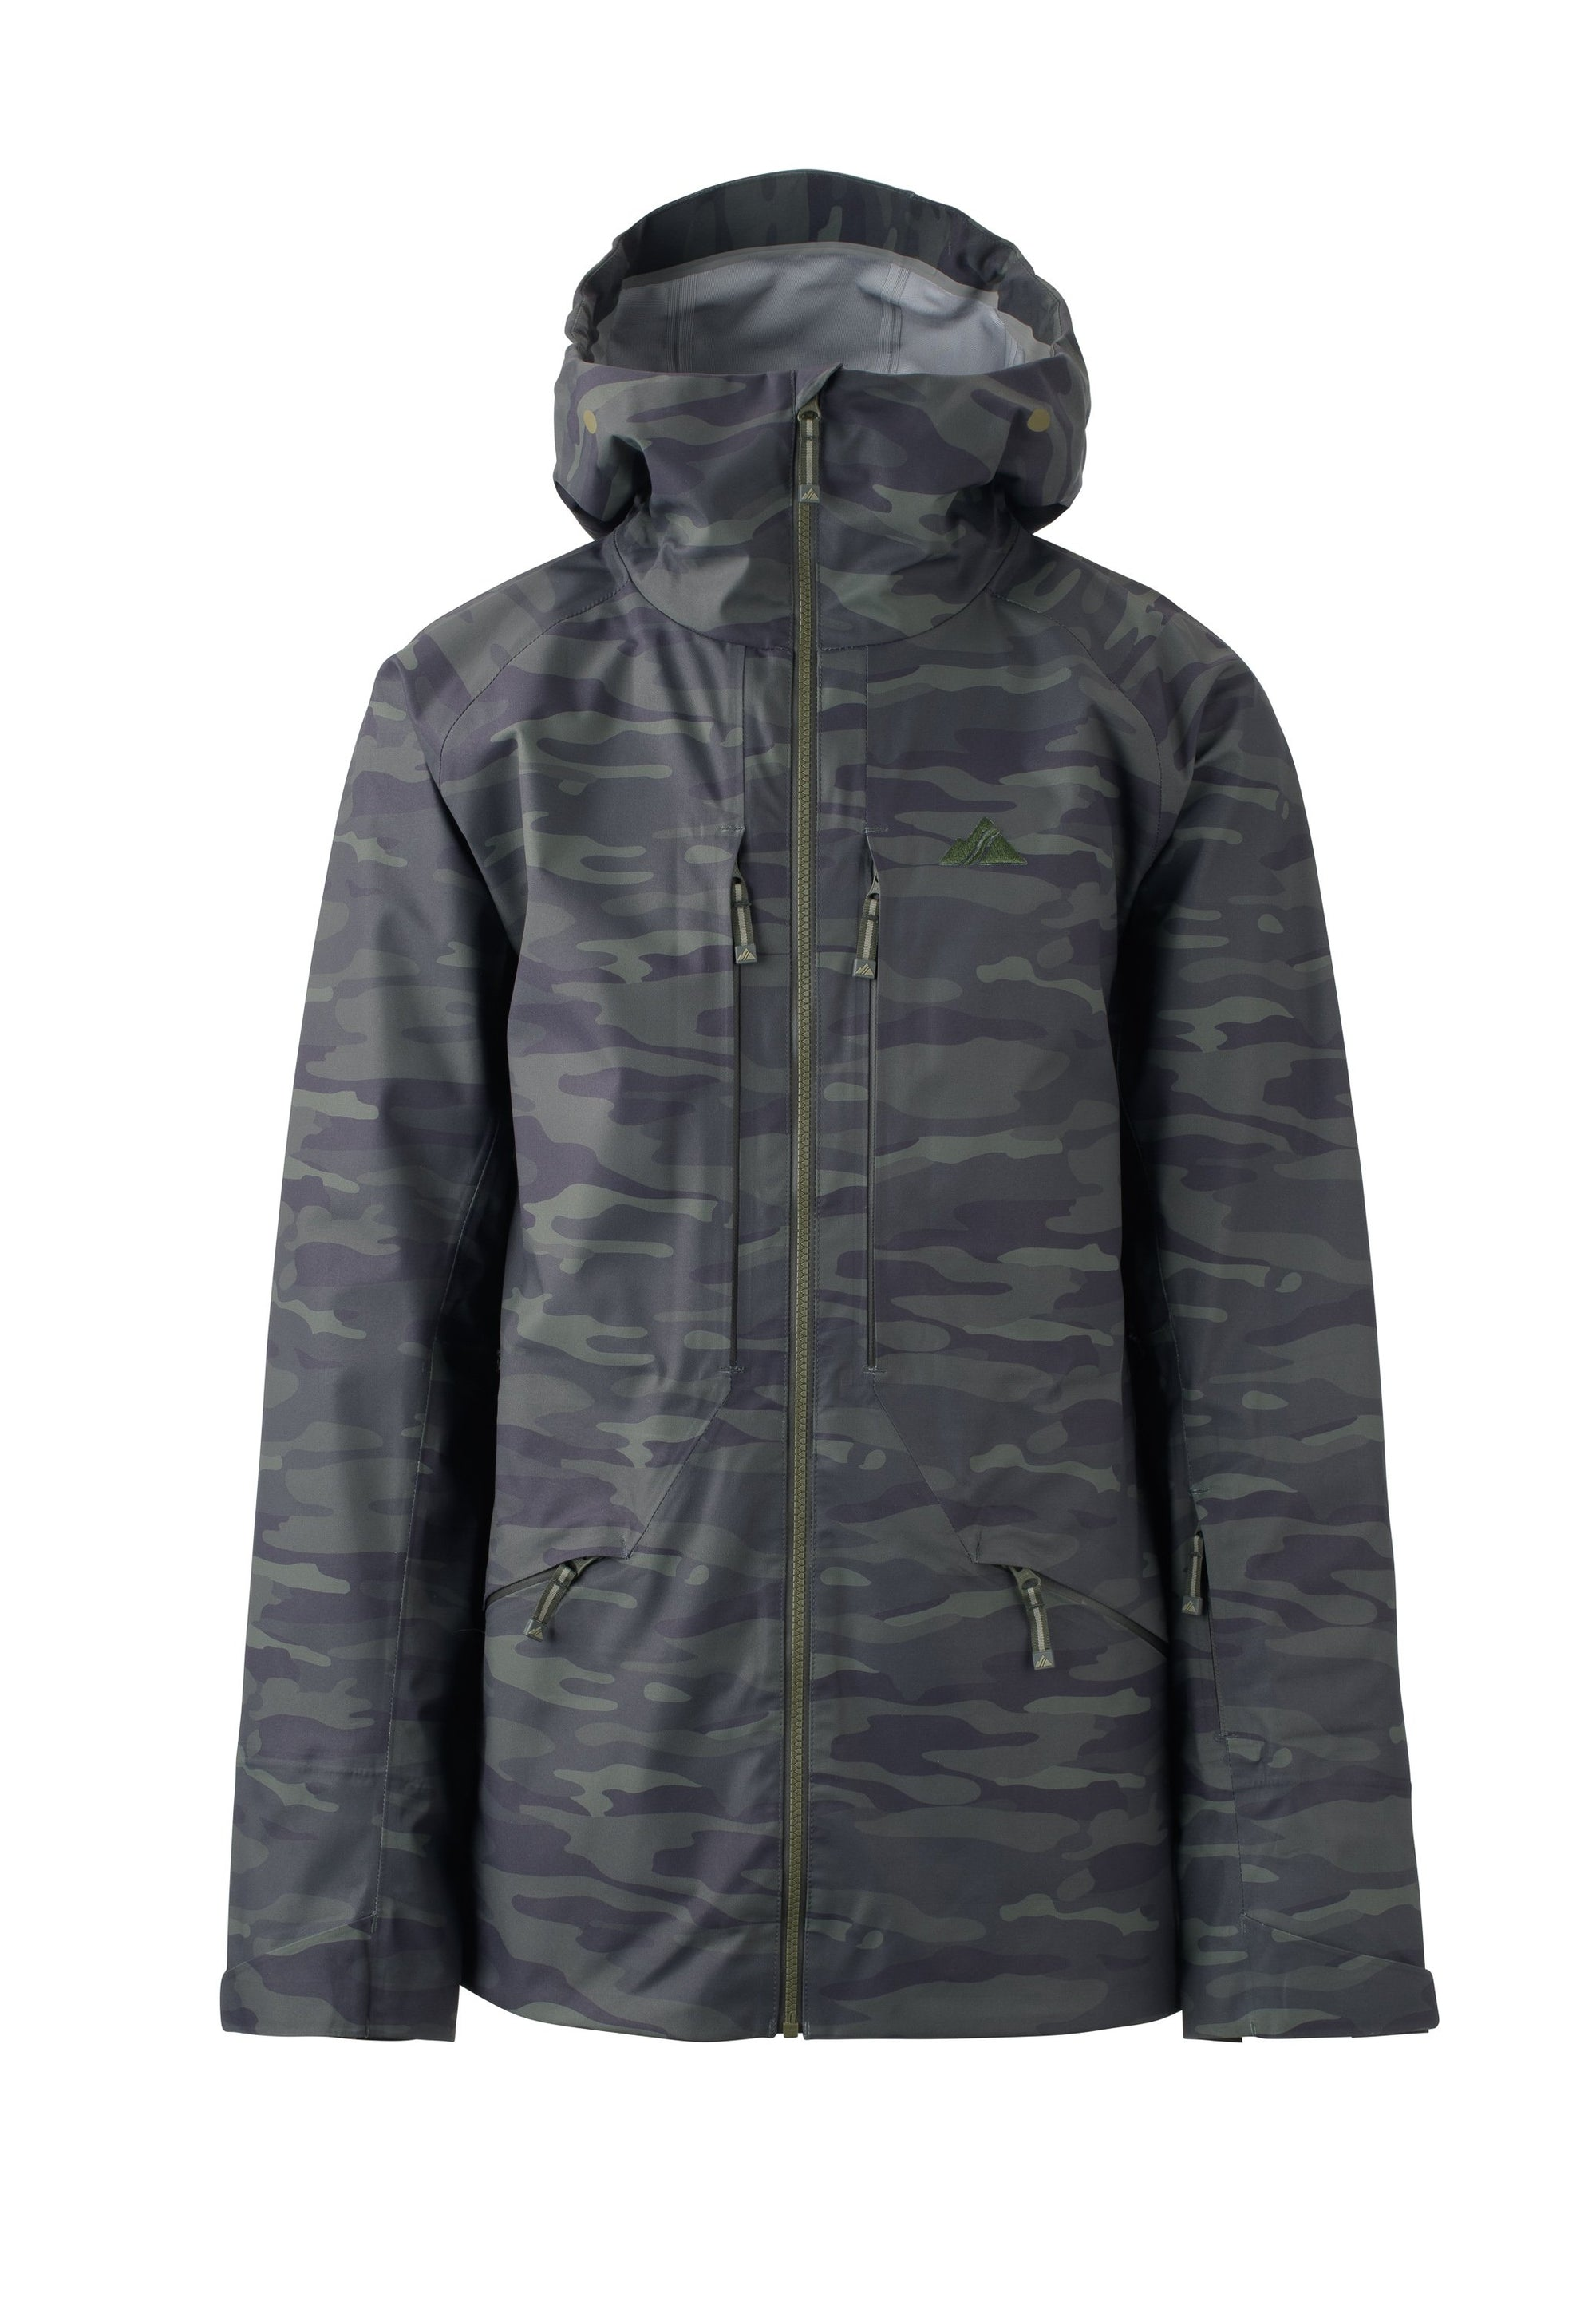 woods camo 2019 men's nomad event shell skiing and snowboarding jacket from strafe outerwear